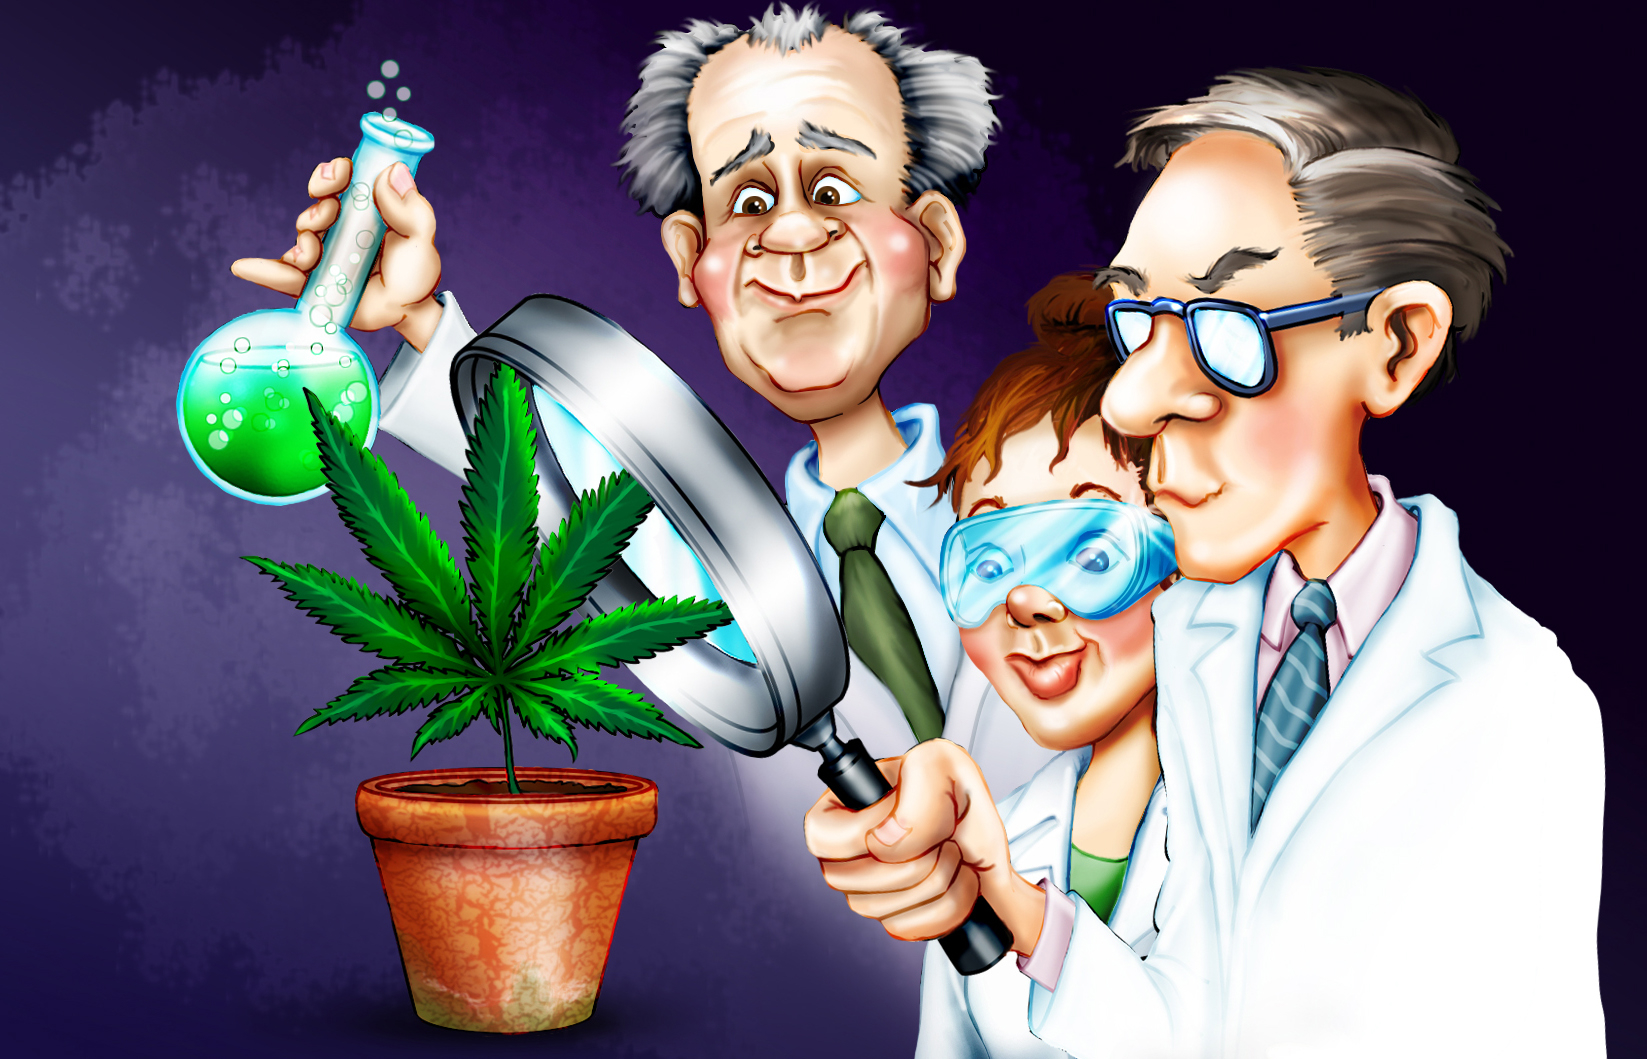 Researching-Cannabinoids-For-Possible-Cancer-Treatment-Pt-II